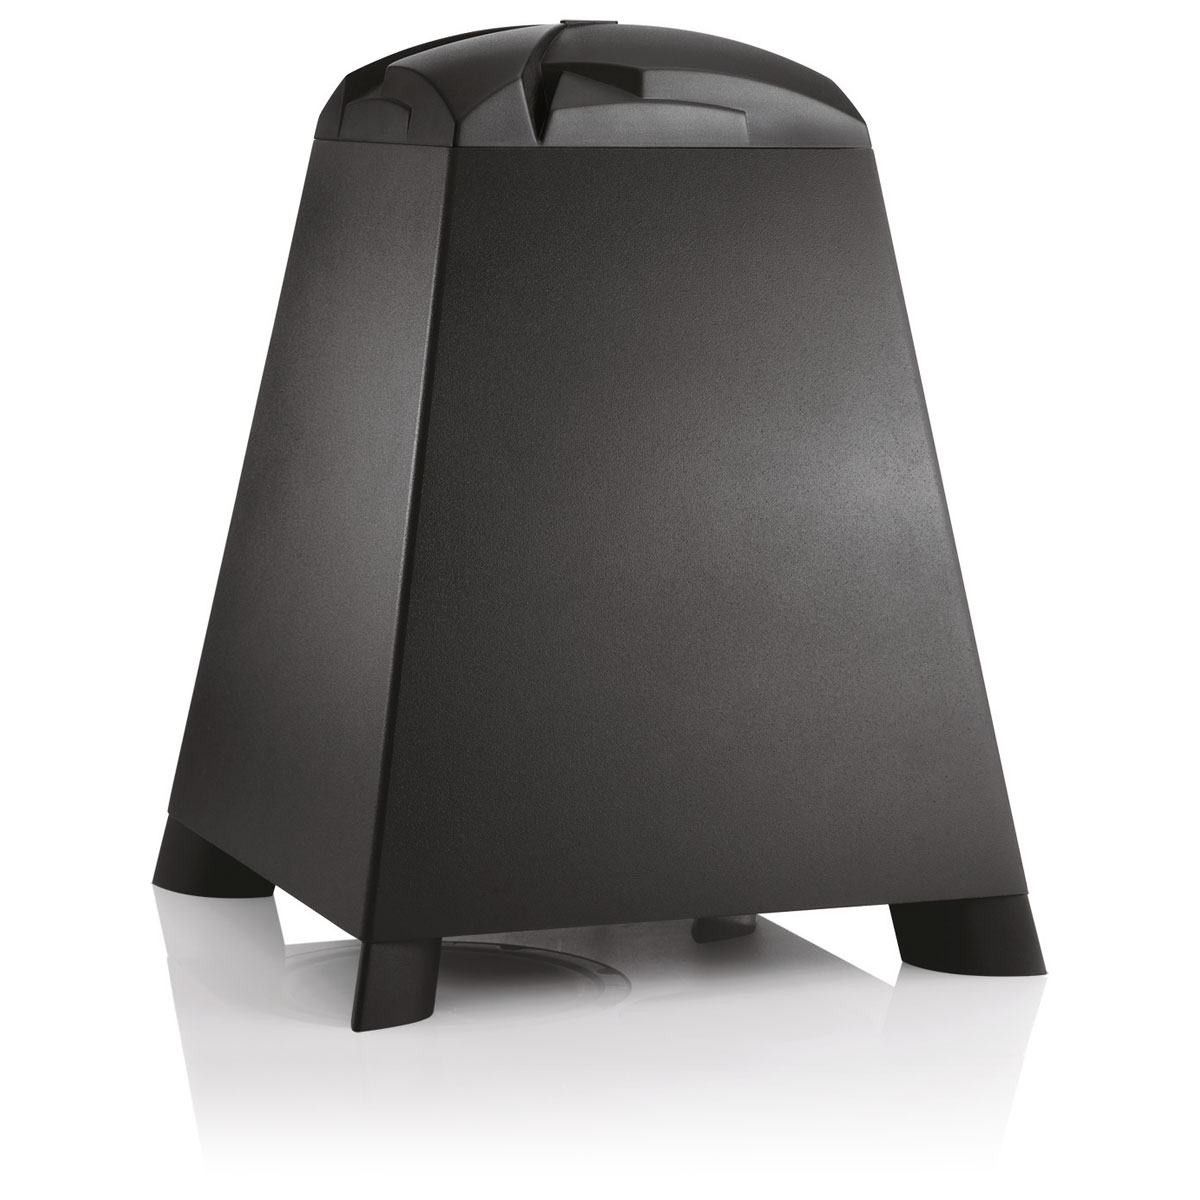 jbl sub140p jbl sur. Black Bedroom Furniture Sets. Home Design Ideas